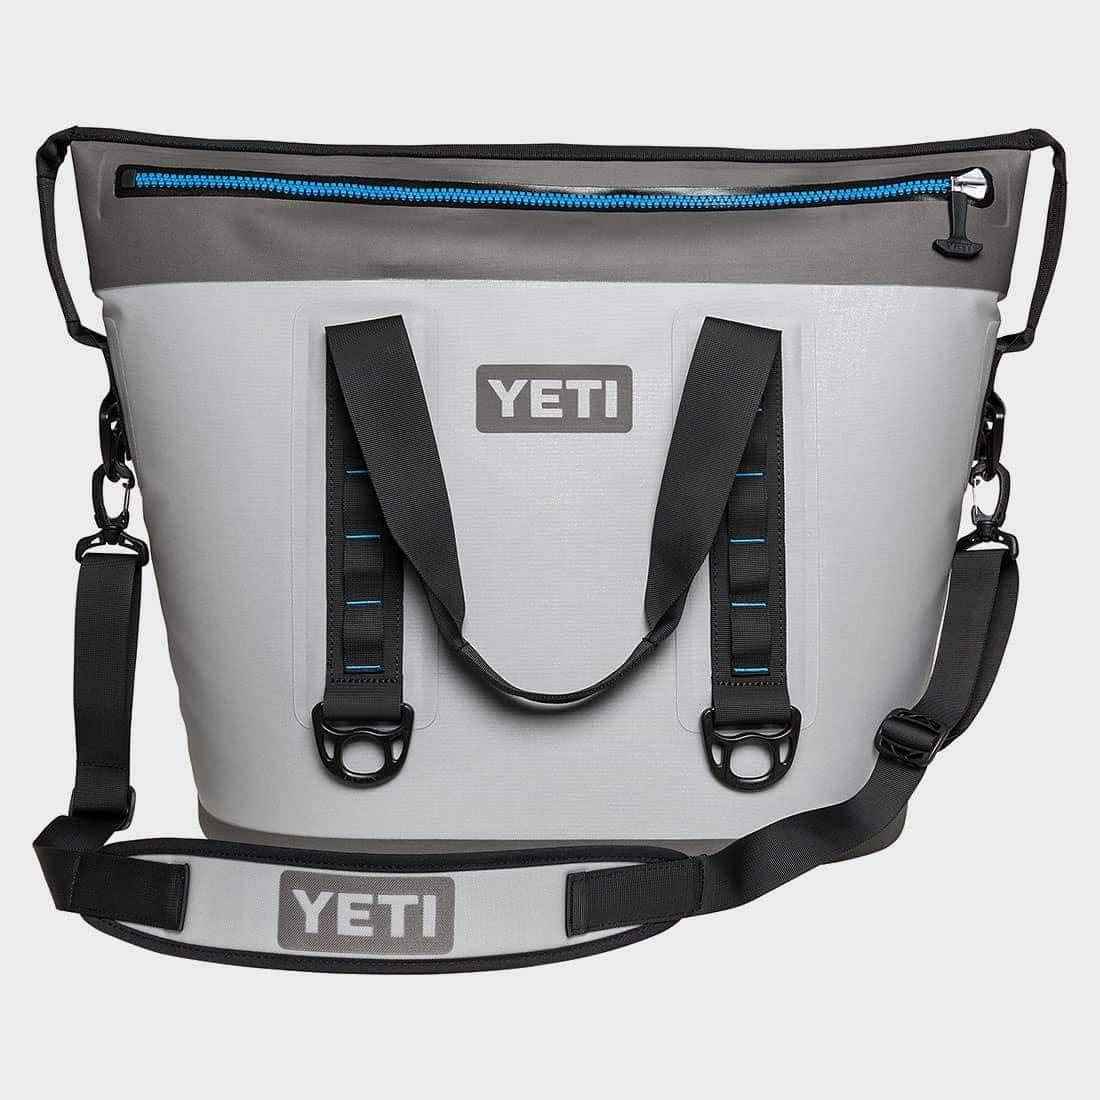 Yeti Hopper Two 40 Soft Cooler Grey/Tahoe Blue